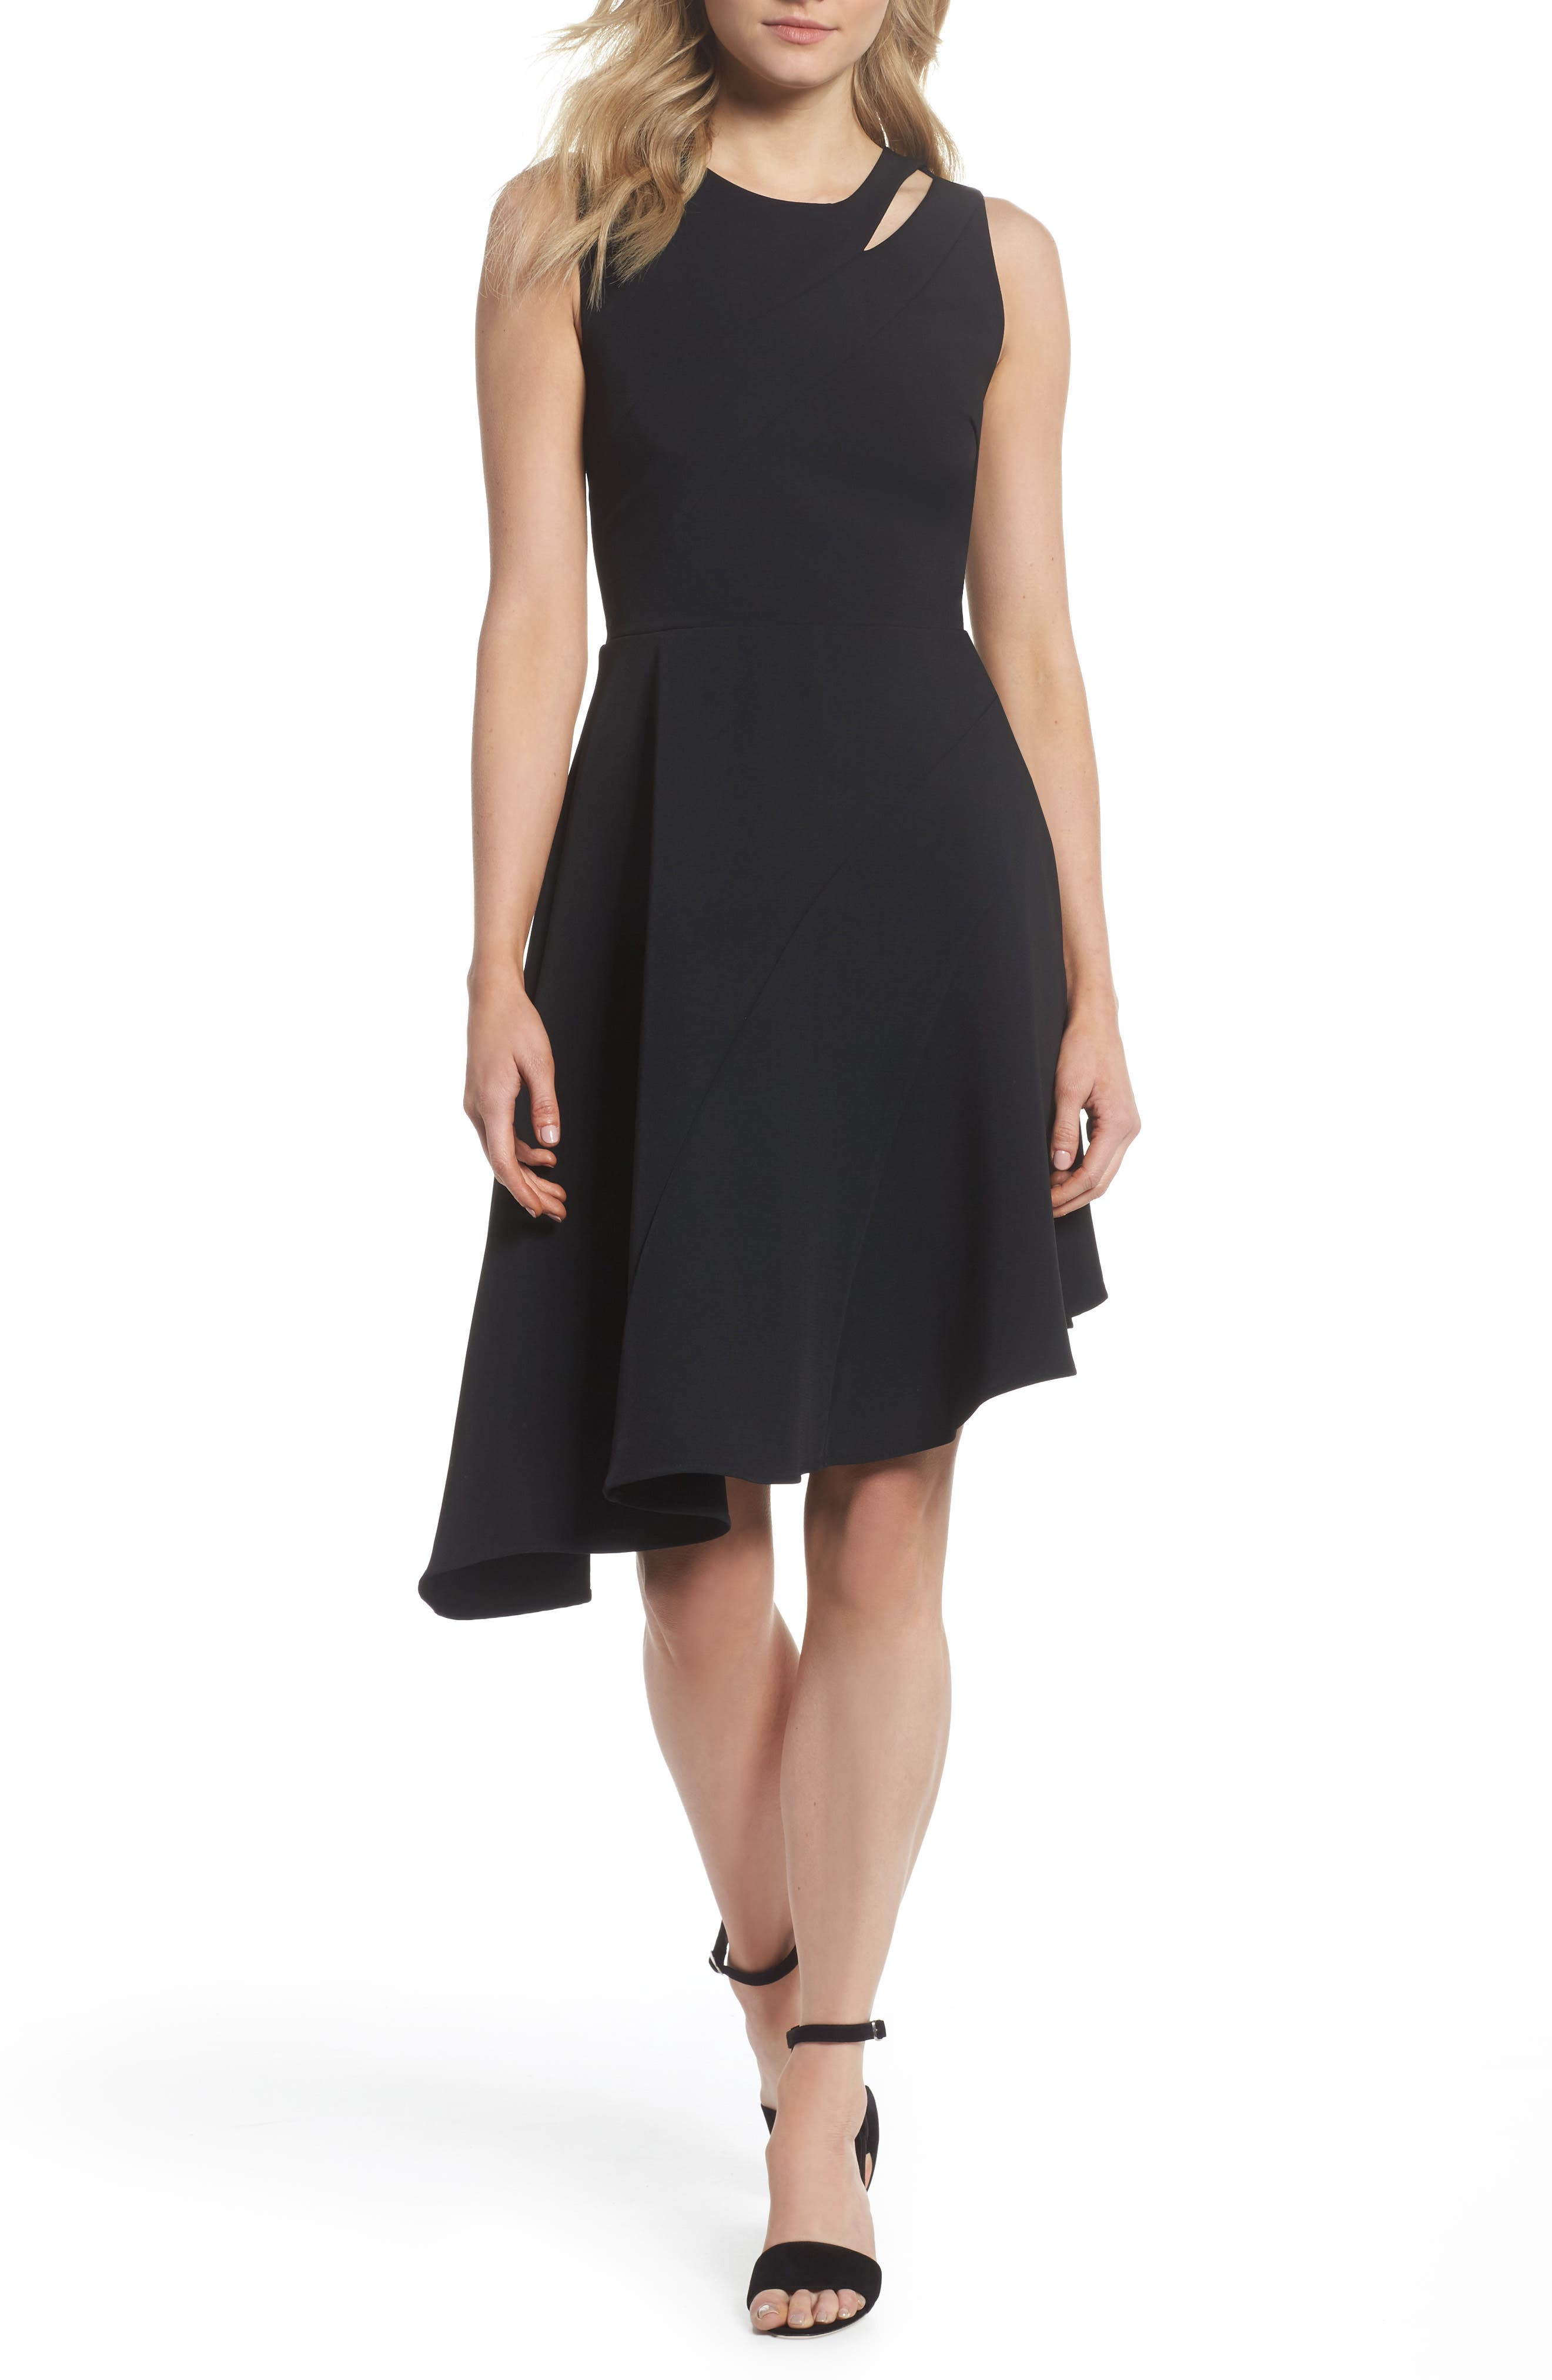 Alternate Image 1 Selected - Adelyn Rae Bonnie Asymmetrical Fit & Flare Dress